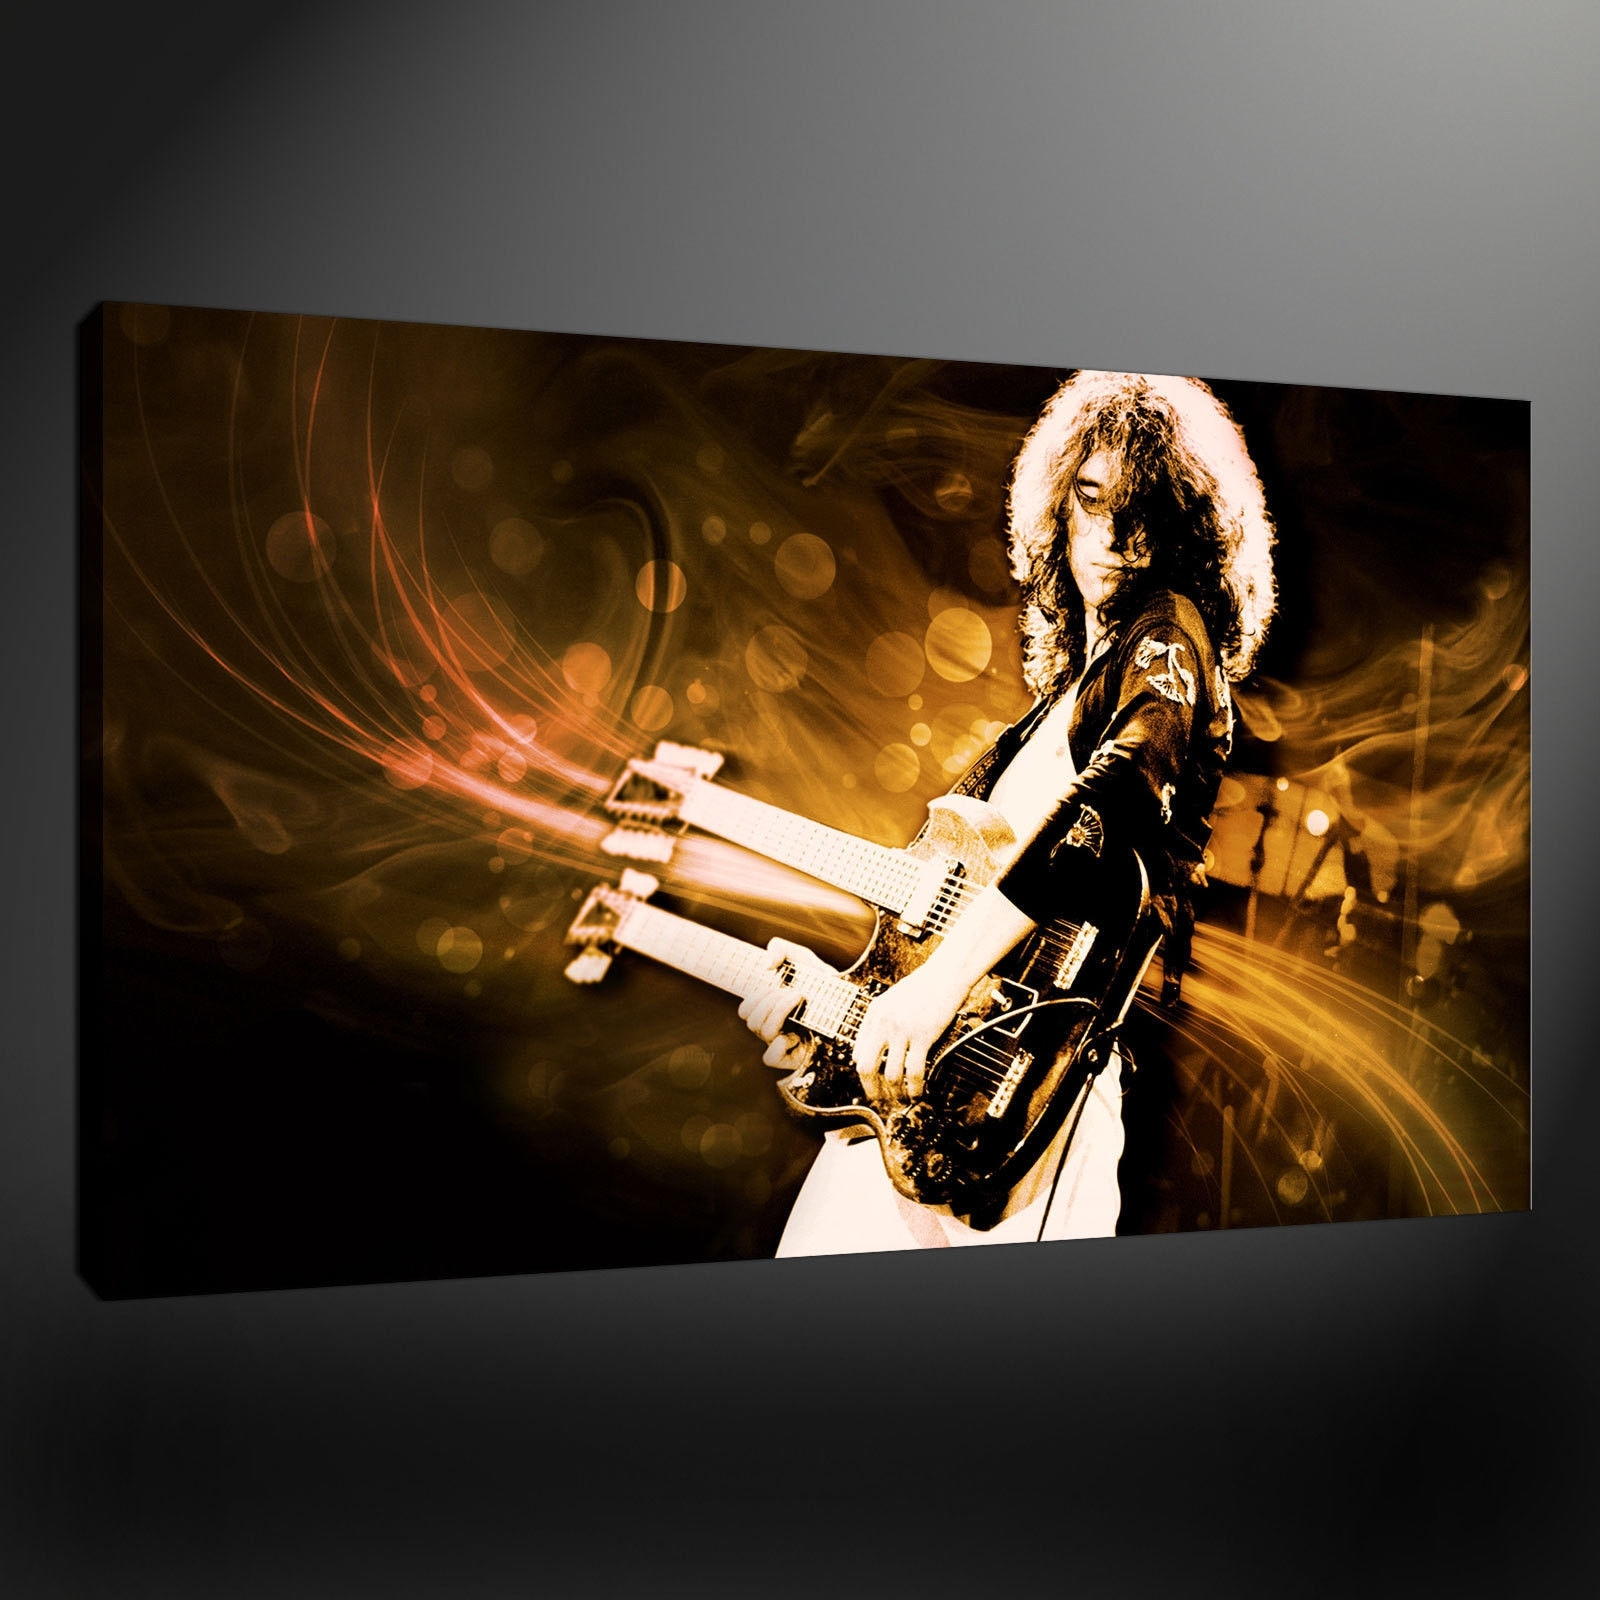 Most Popular Canvas Print Pictures. High Quality, Handmade, Free Next Day Delivery (View 11 of 15)